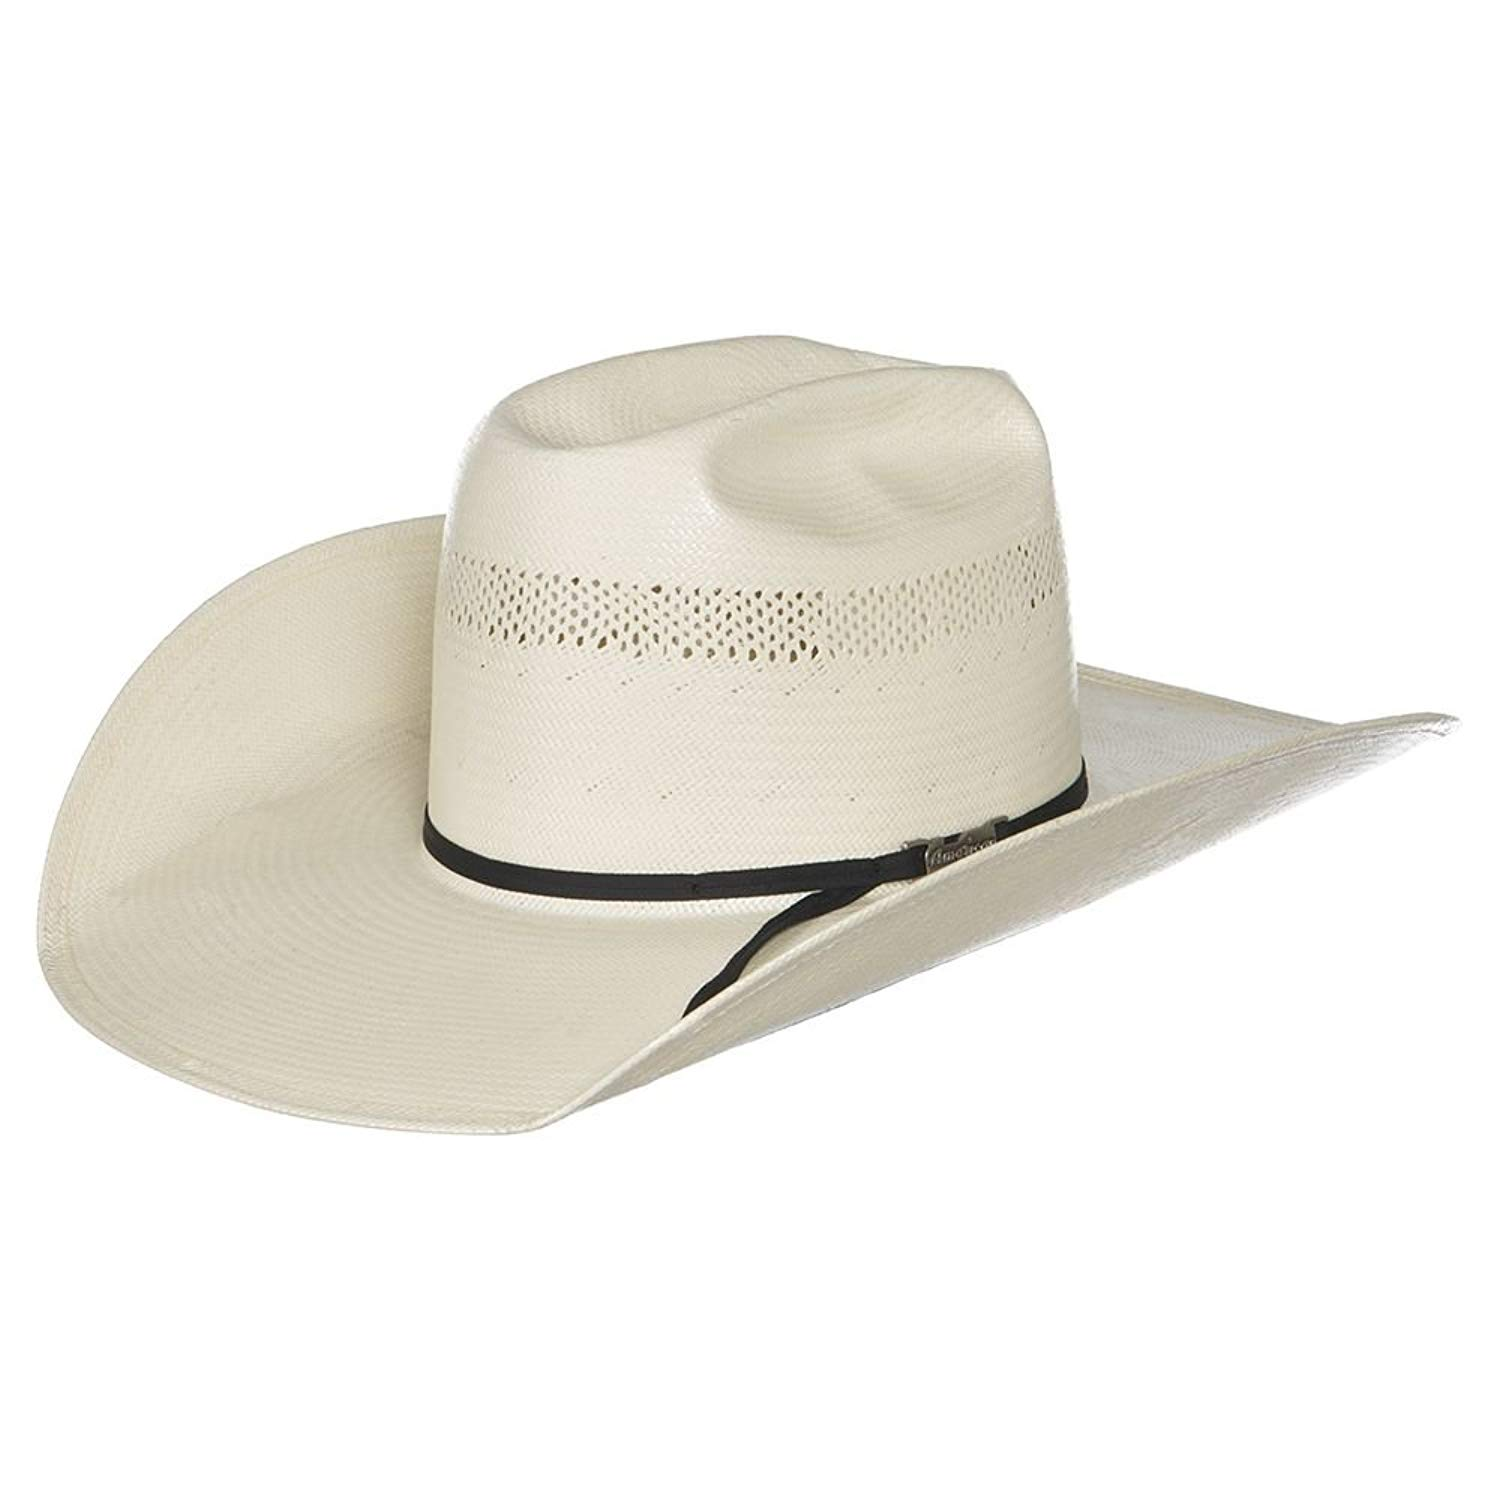 76bc01acf Cheap Mens Cowboy Hat Band, find Mens Cowboy Hat Band deals on line ...